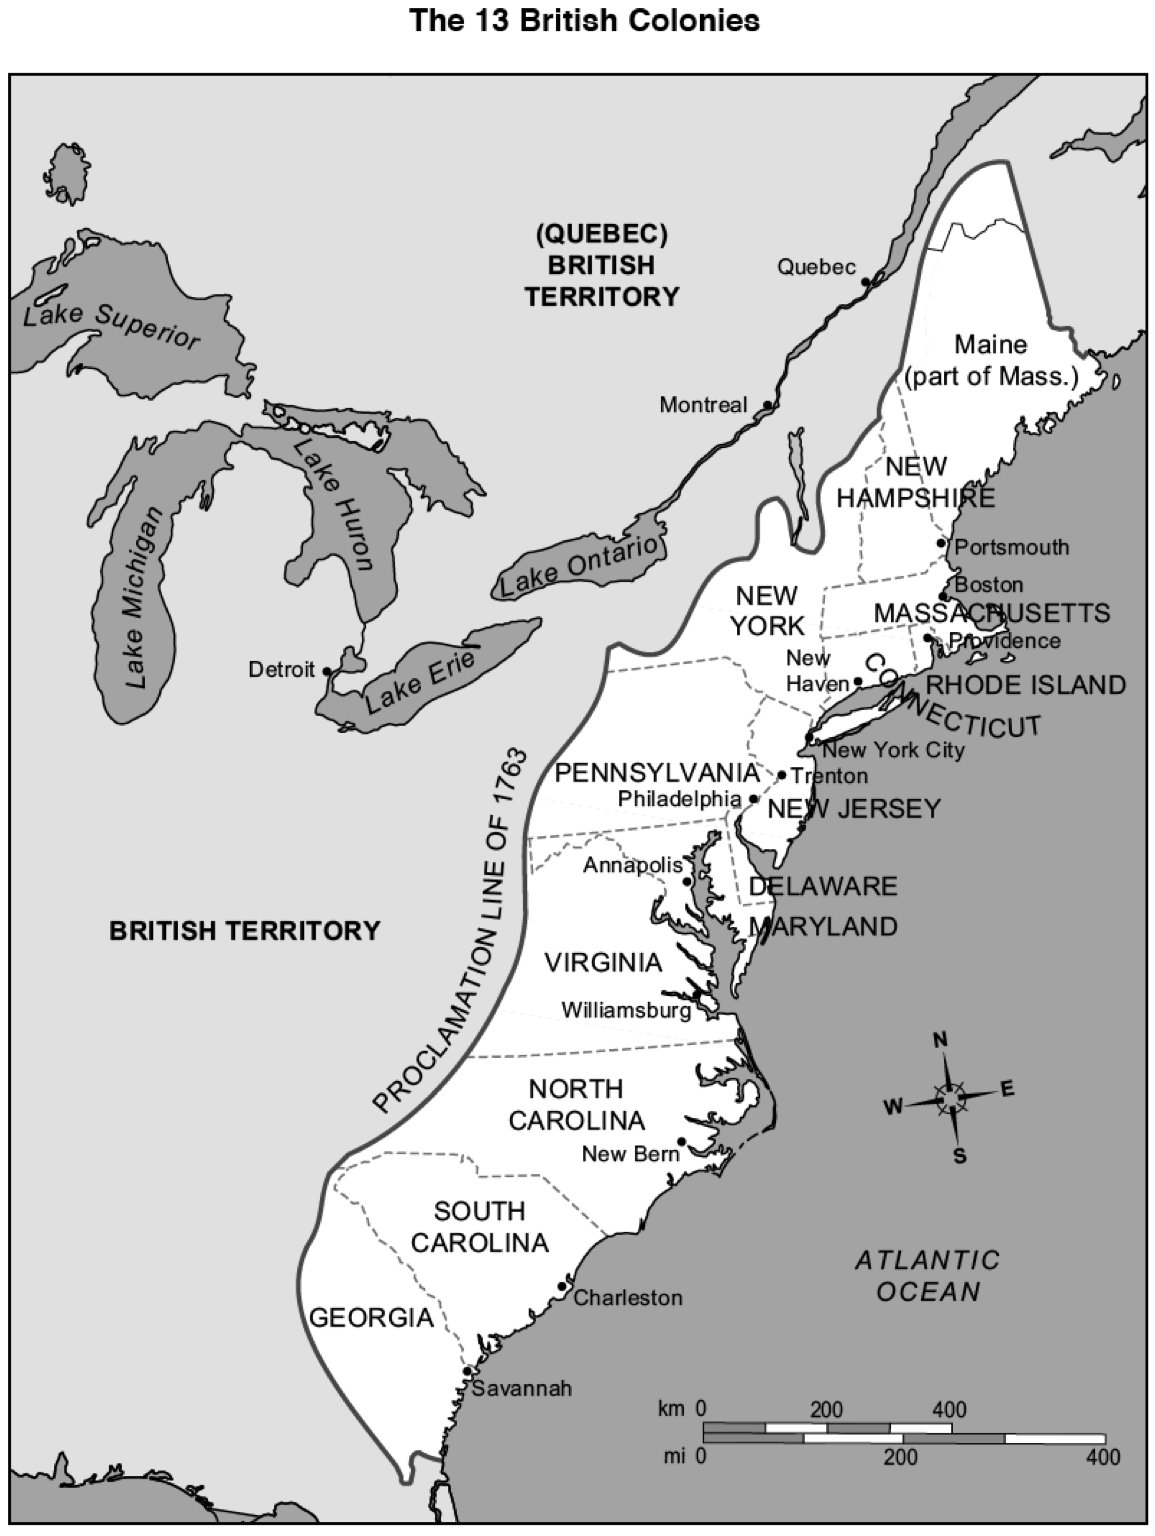 medium resolution of 13 colonies map - Google Search   13 colonies map